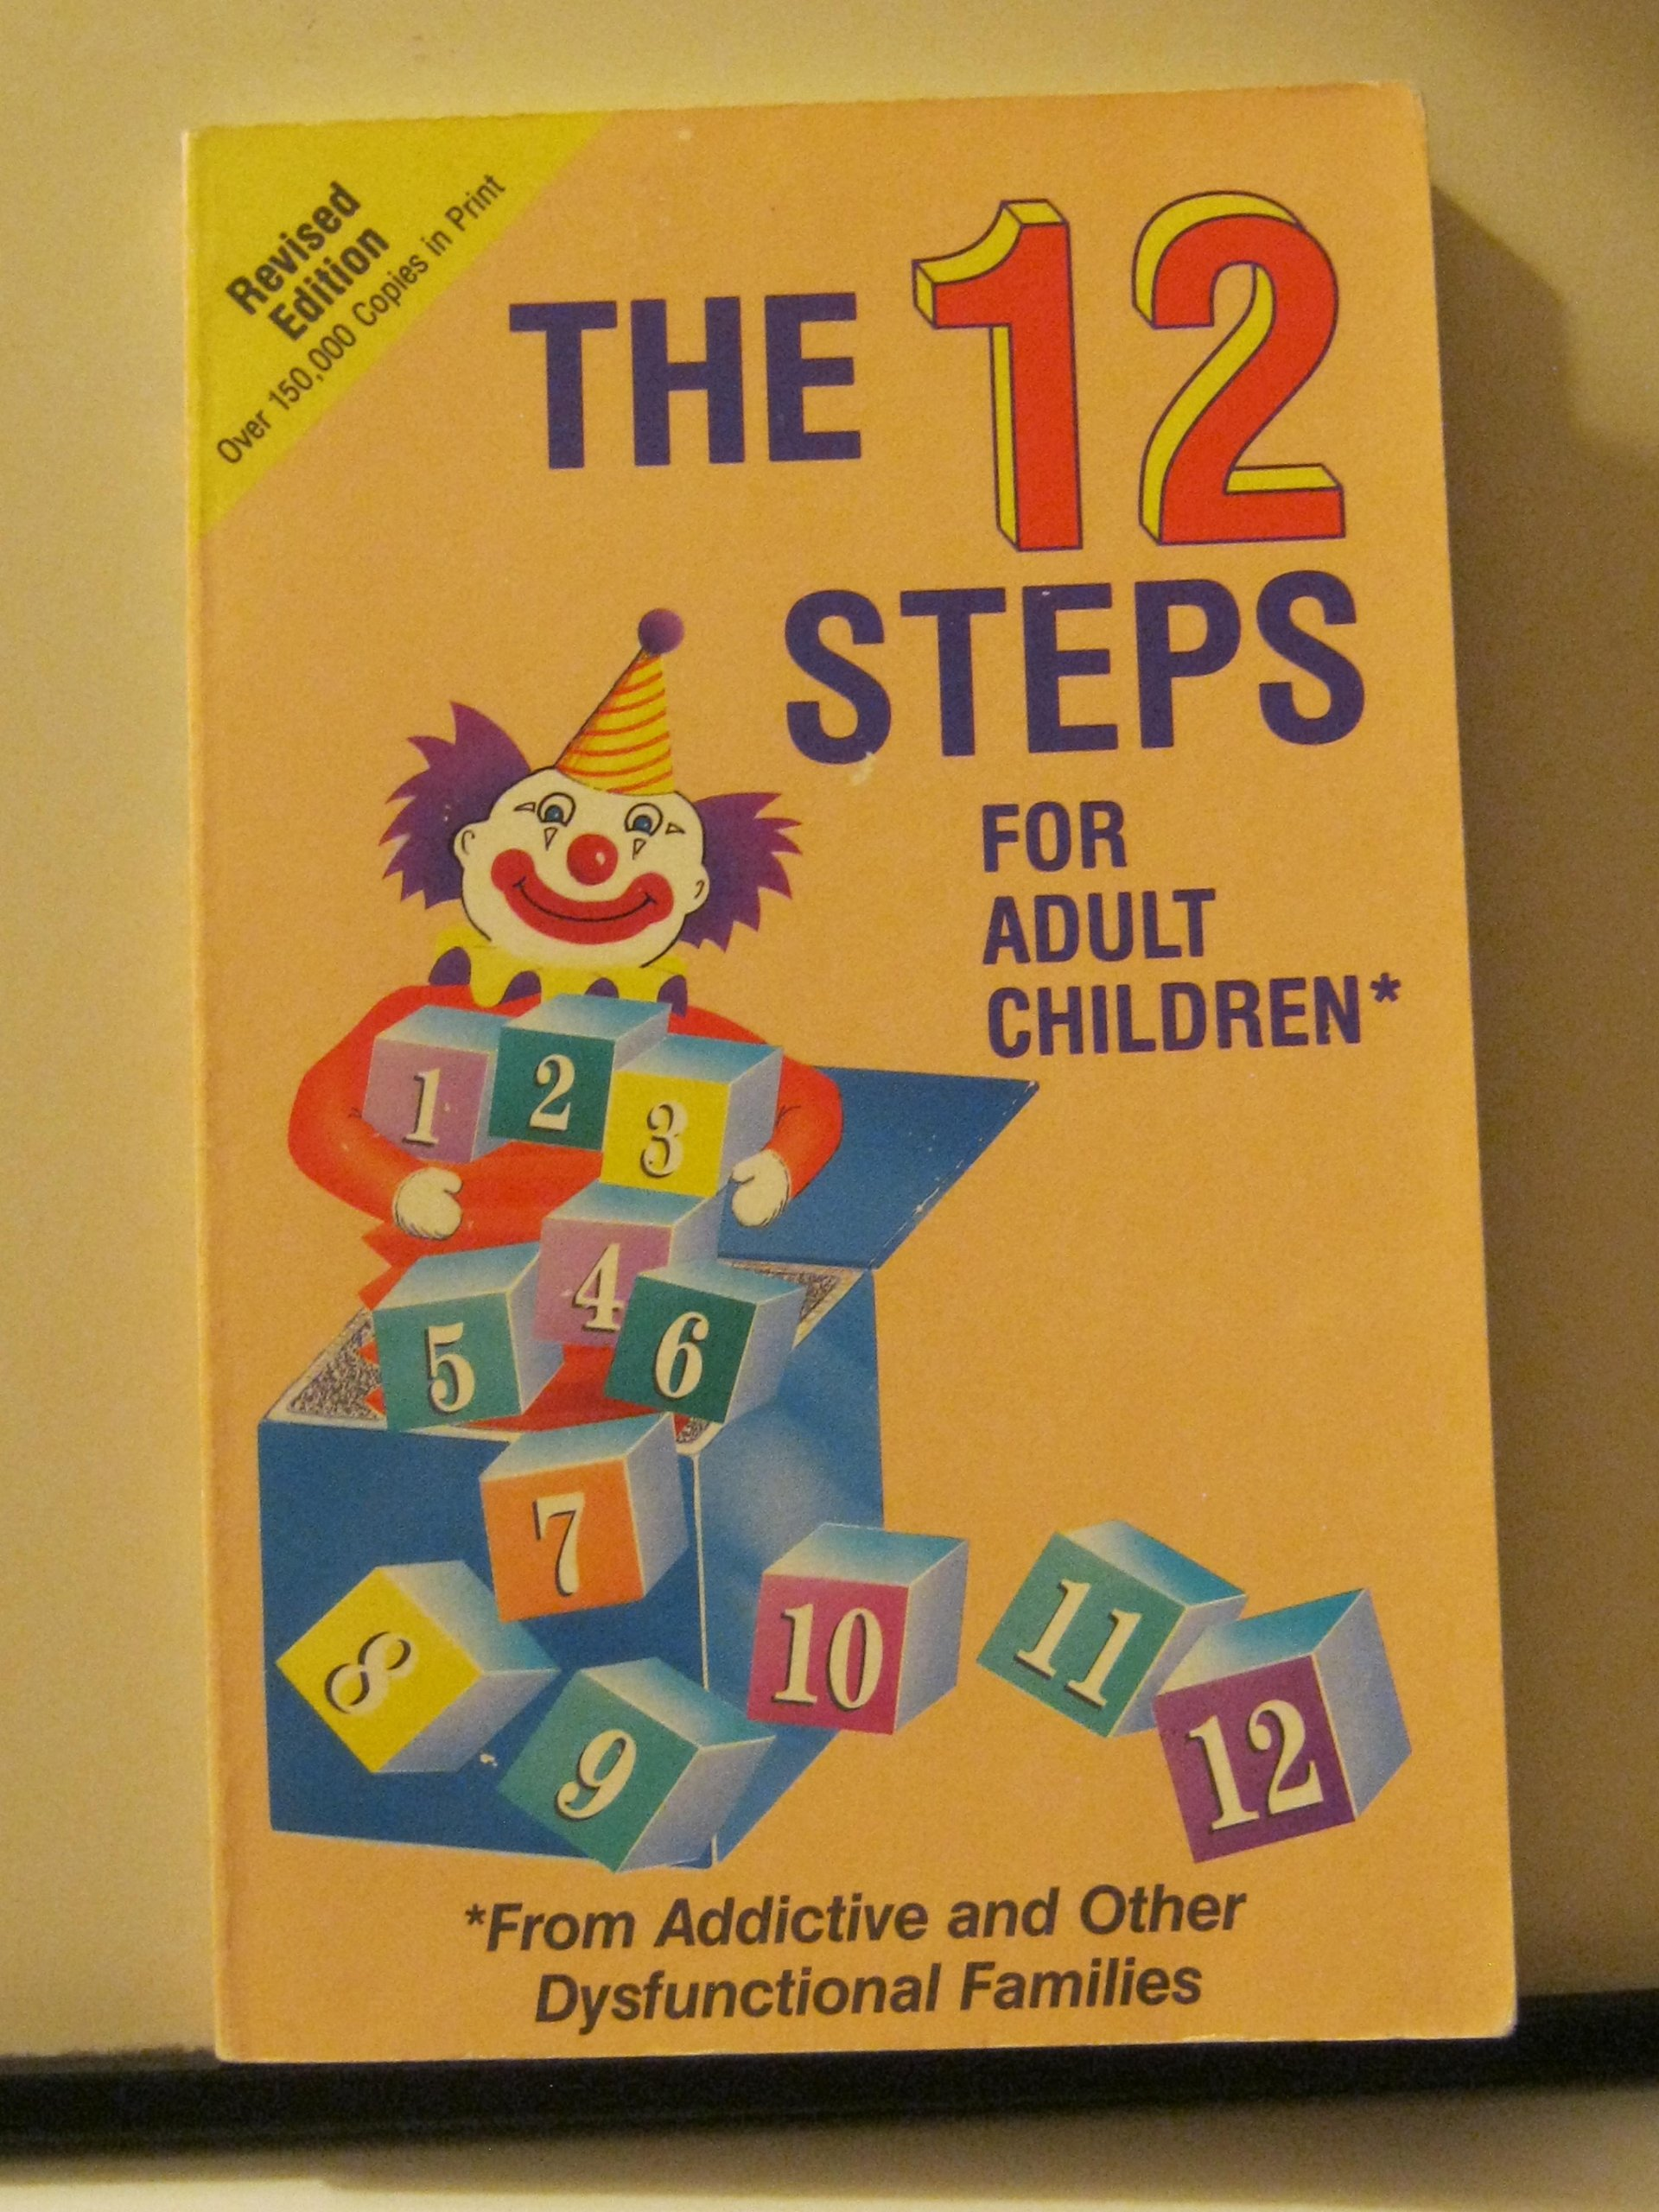 12 Steps for Adult Children: Amazon.co.uk: Friends in Recovery.:  9780941405089: Books